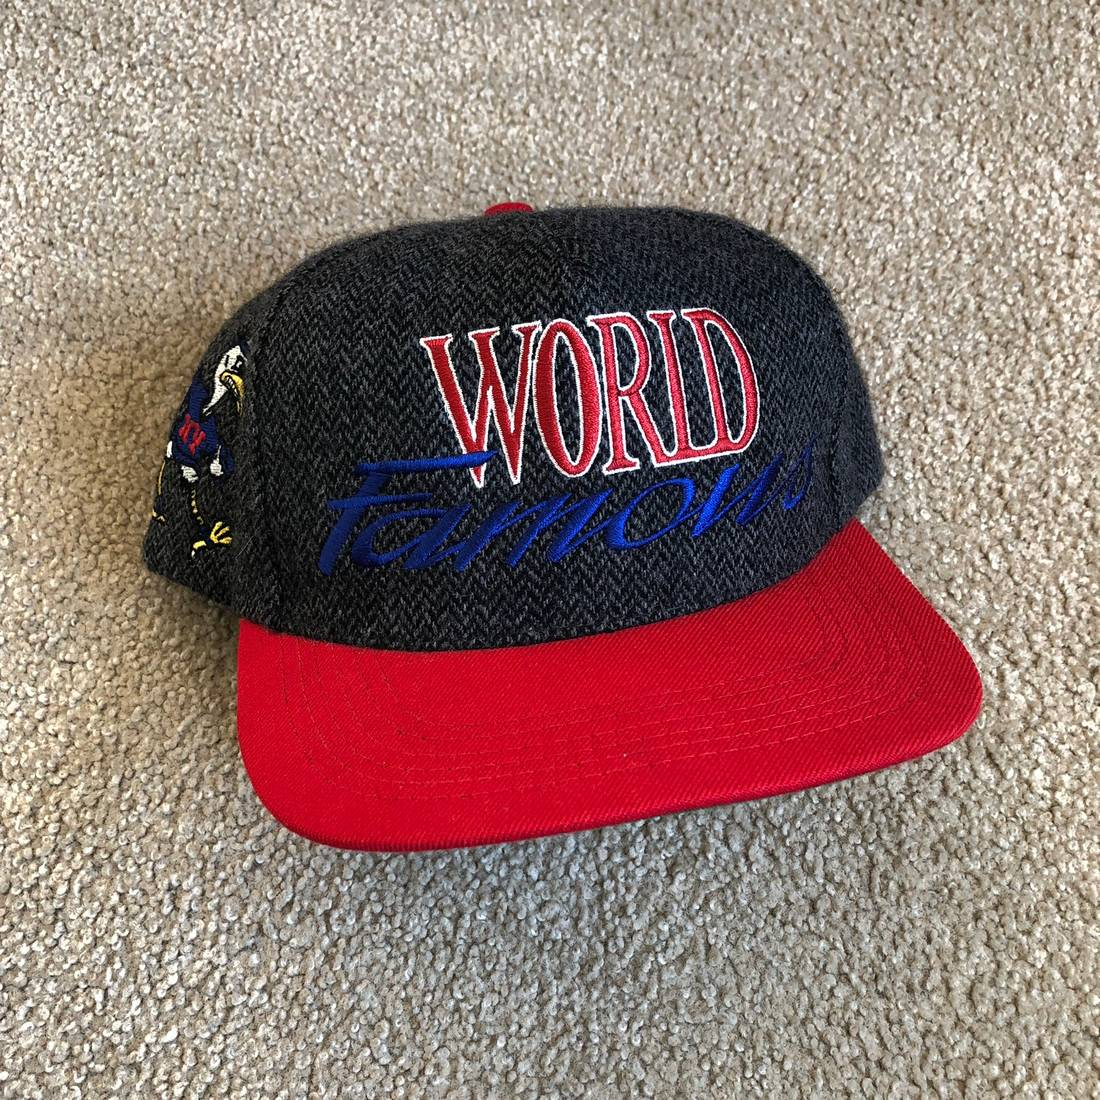 e91a00e31cf ... usa supreme world famous 2008 snapback hat 5 panel tyler the creator  size one size 1